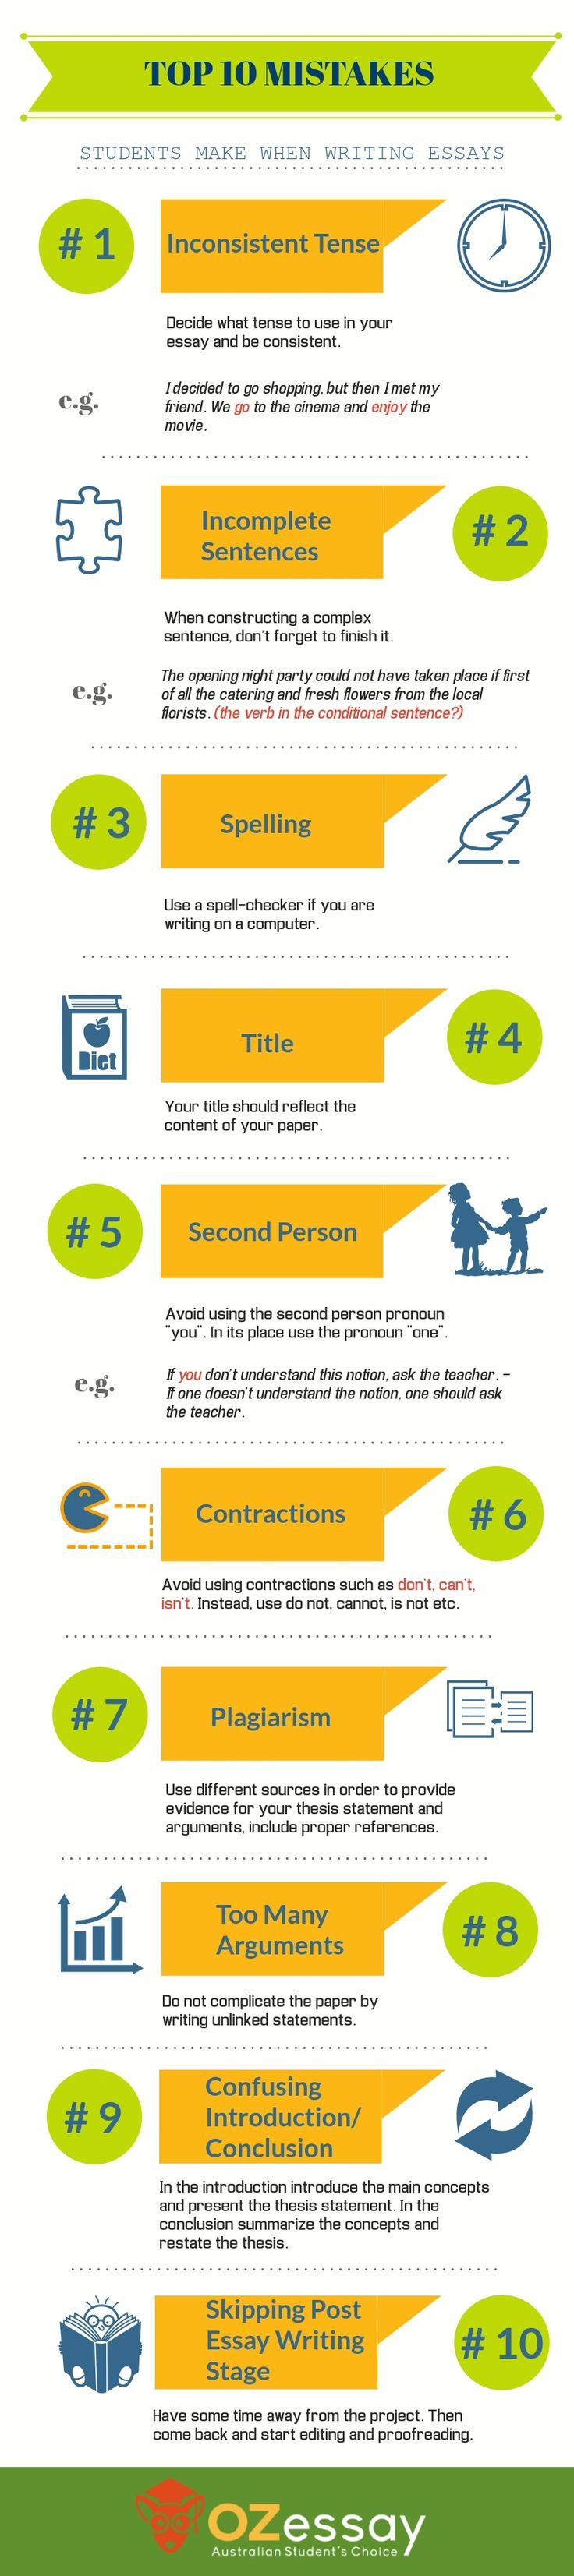 Top Thesis Writing Site Audits Meanings Of Emojis - Performance professional